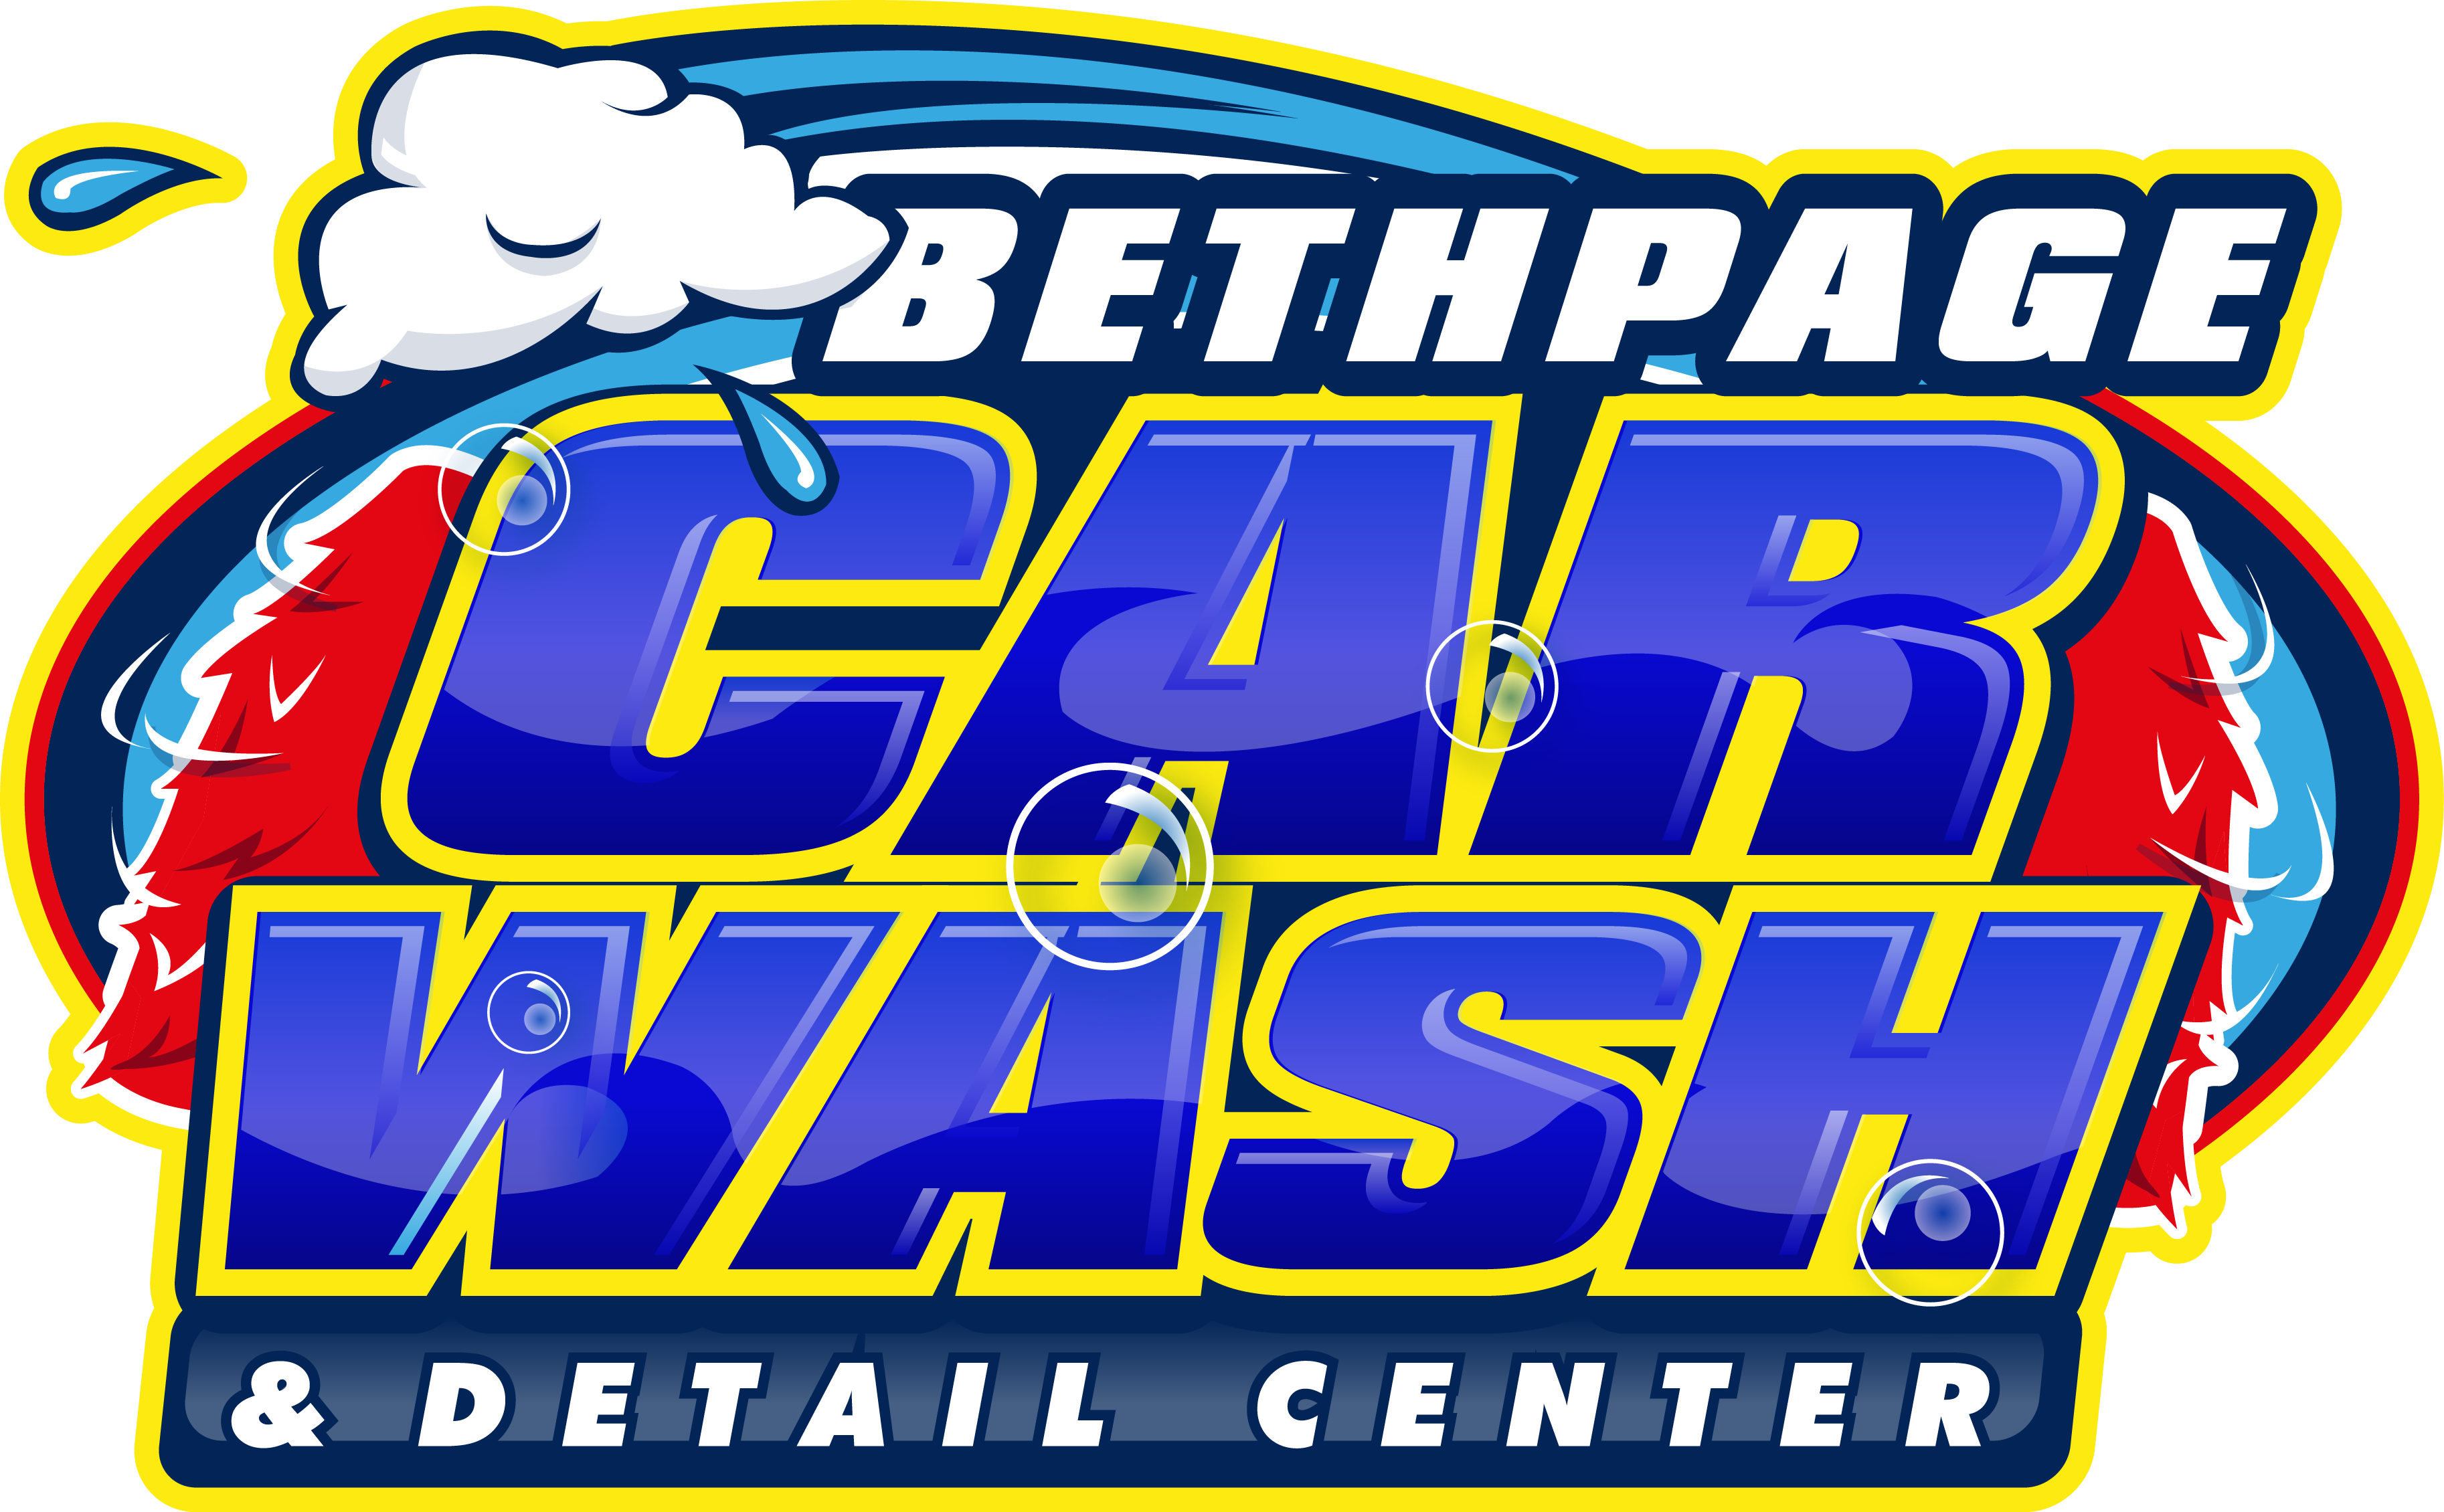 Car wash school fundraiser clipart image royalty free download car wash logo - Google Search | car wahs | Pinterest | Logo google ... image royalty free download